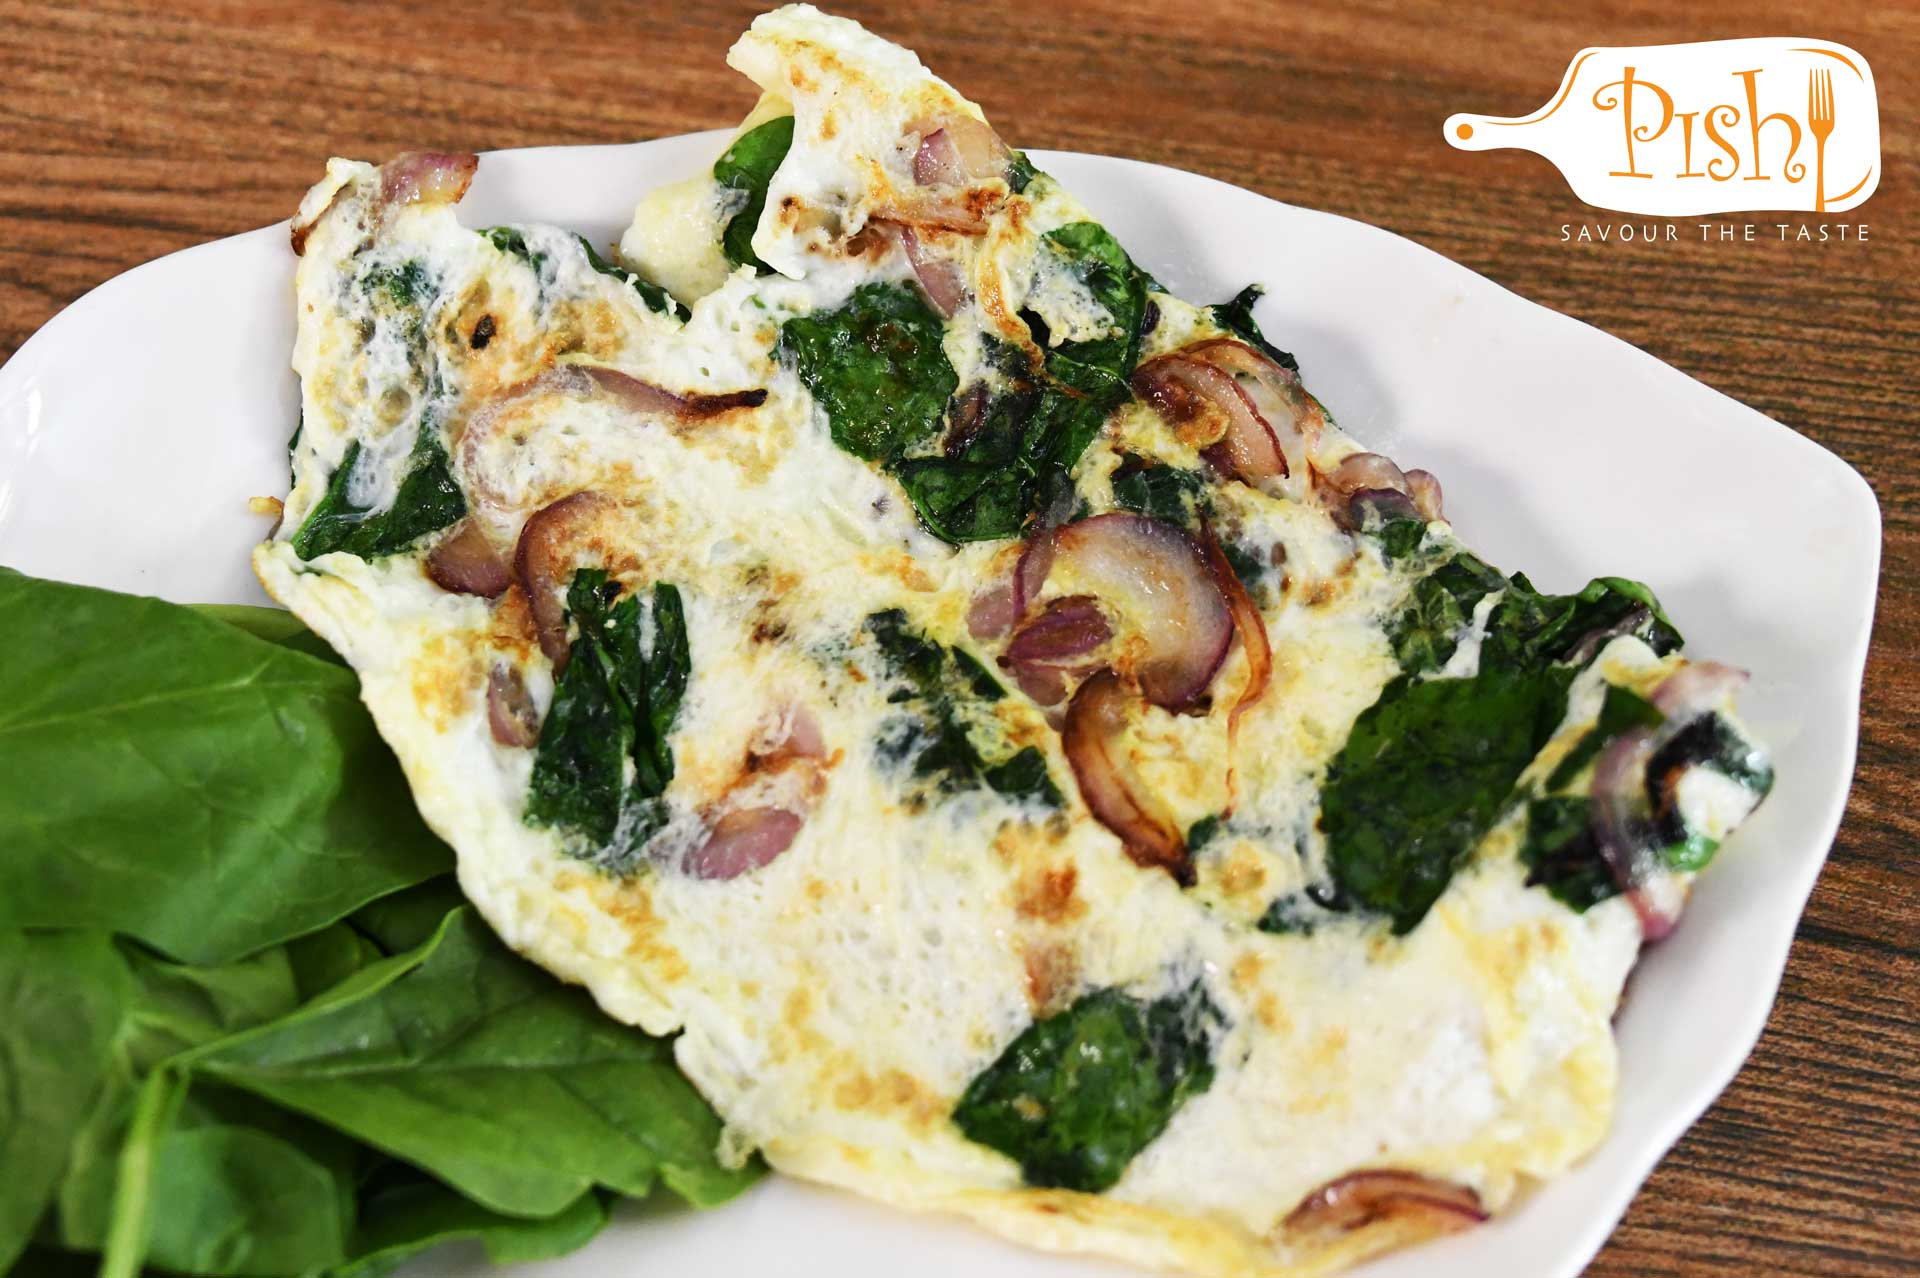 Spinach Egg-white Omelette